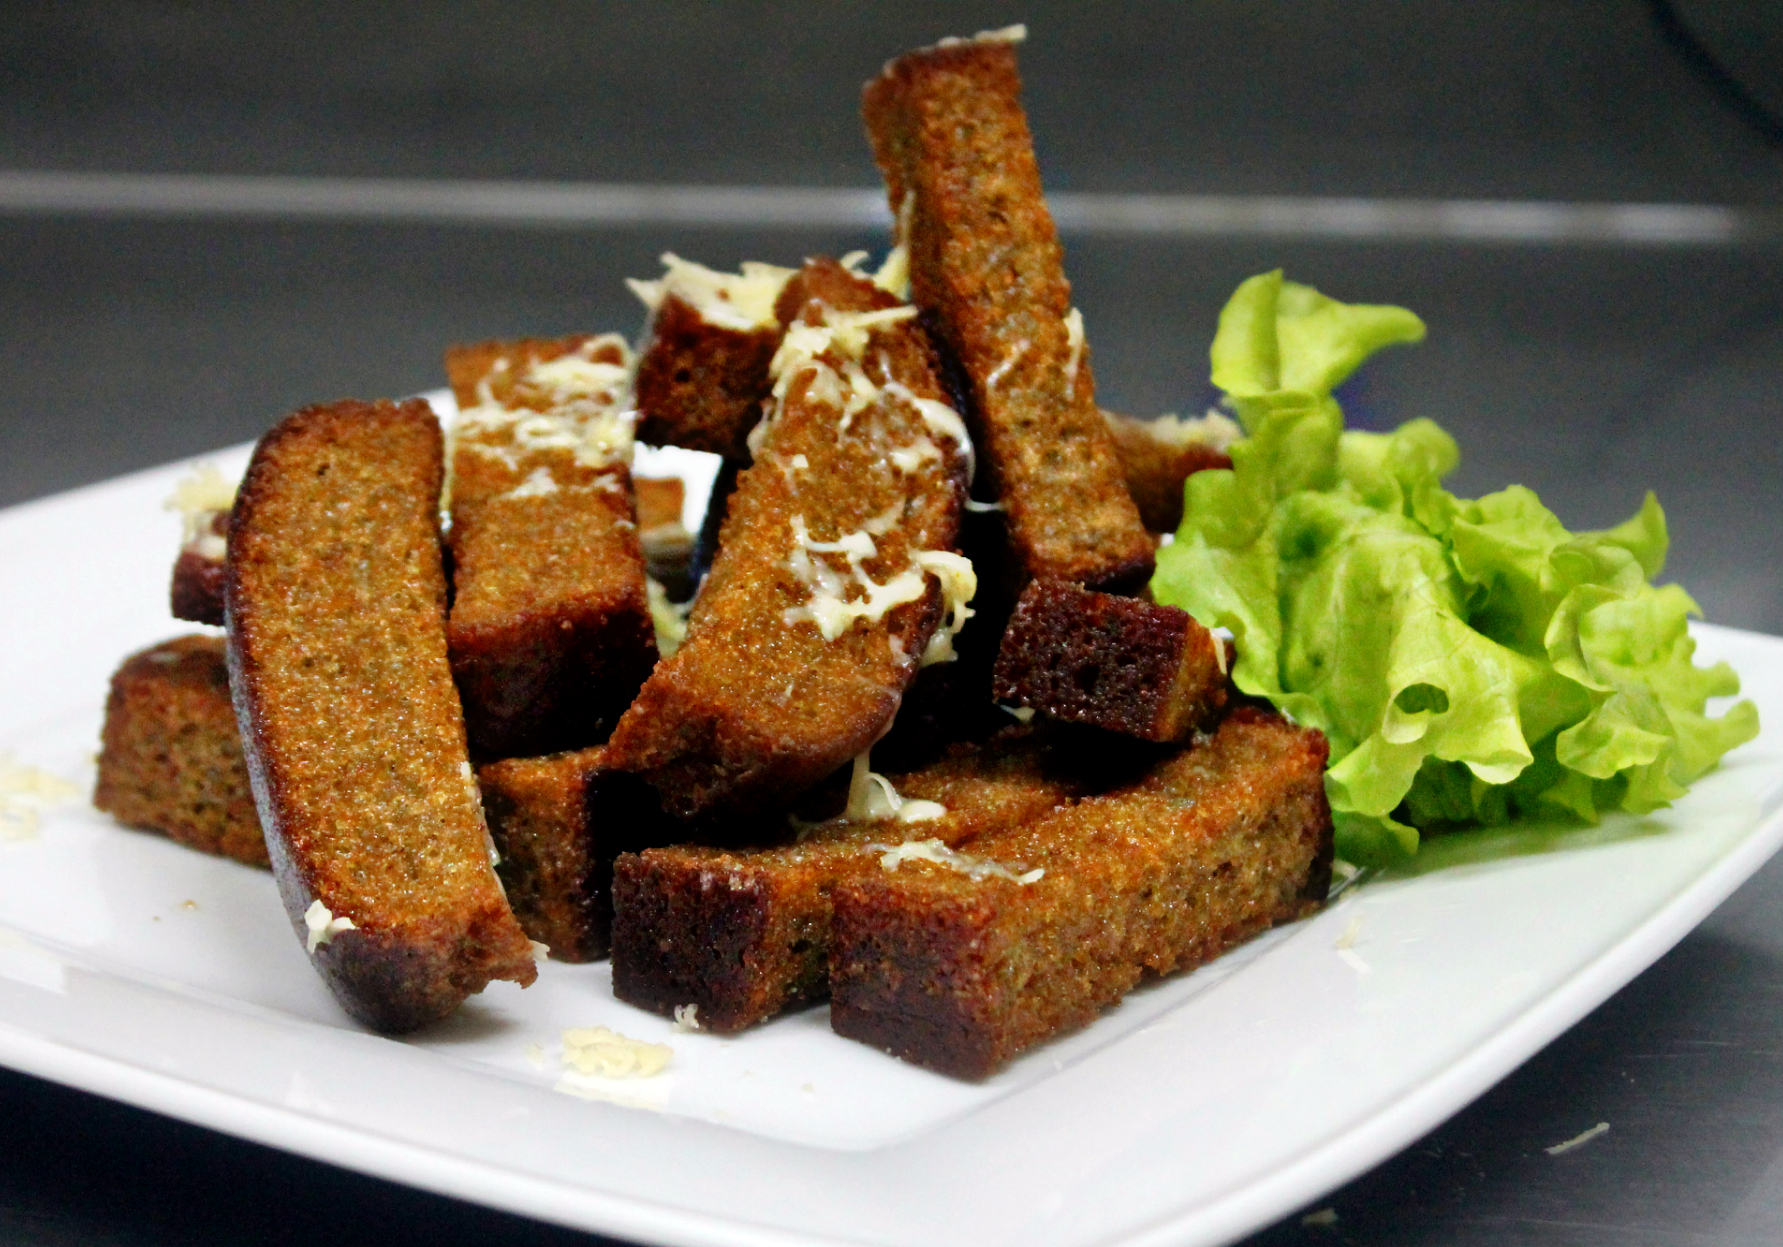 Spicy croutons with garlic and cheese